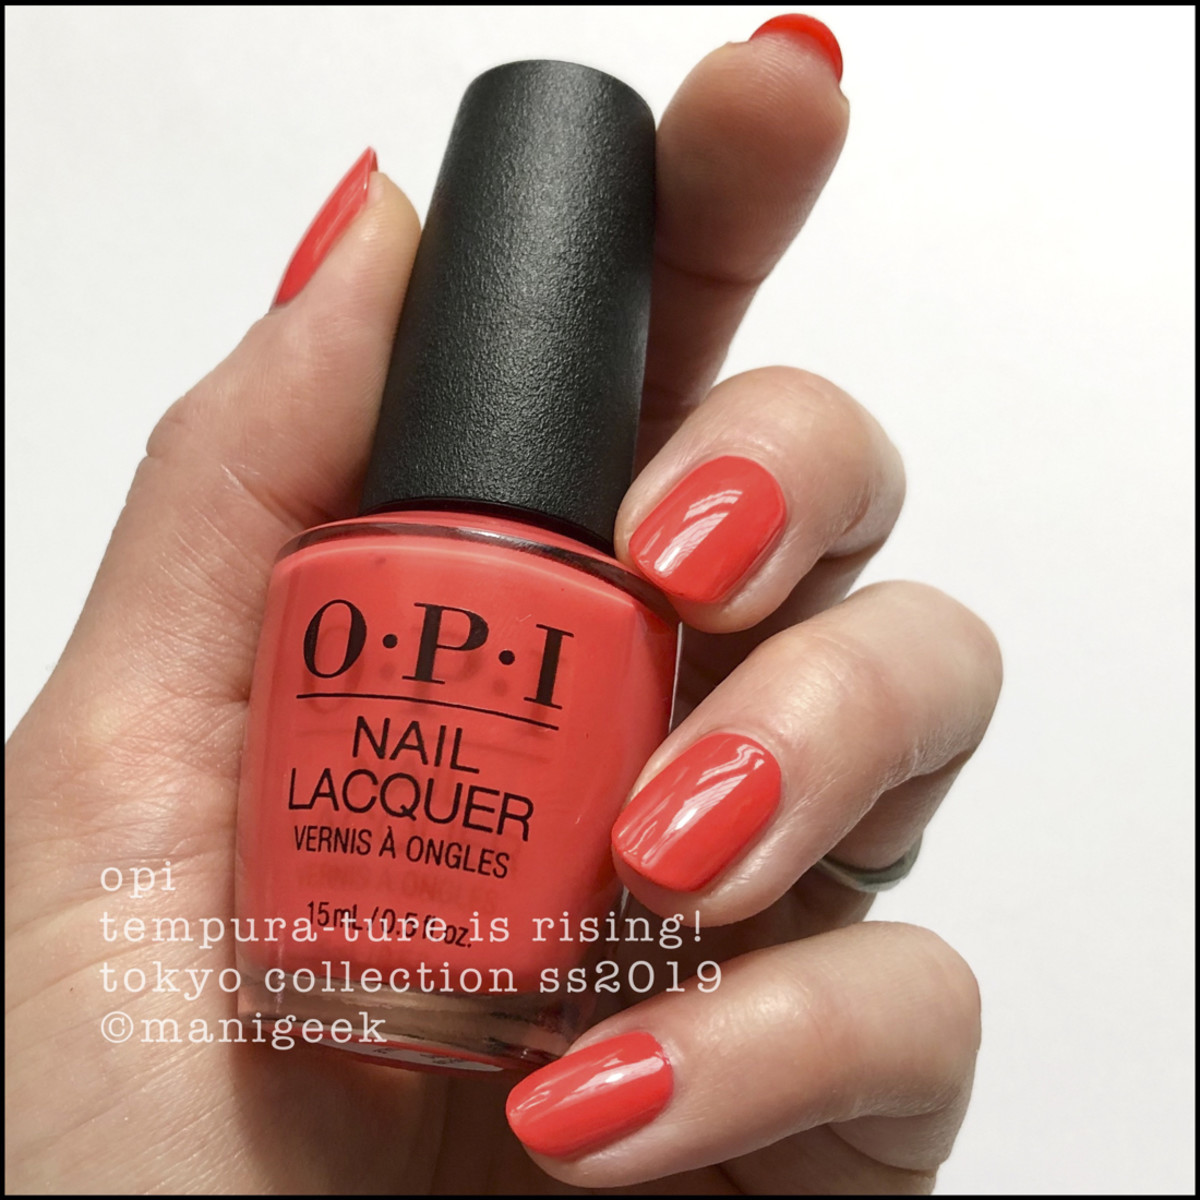 OPI Tempura-ture is Rising - OPI Tokyo Swatches 2019